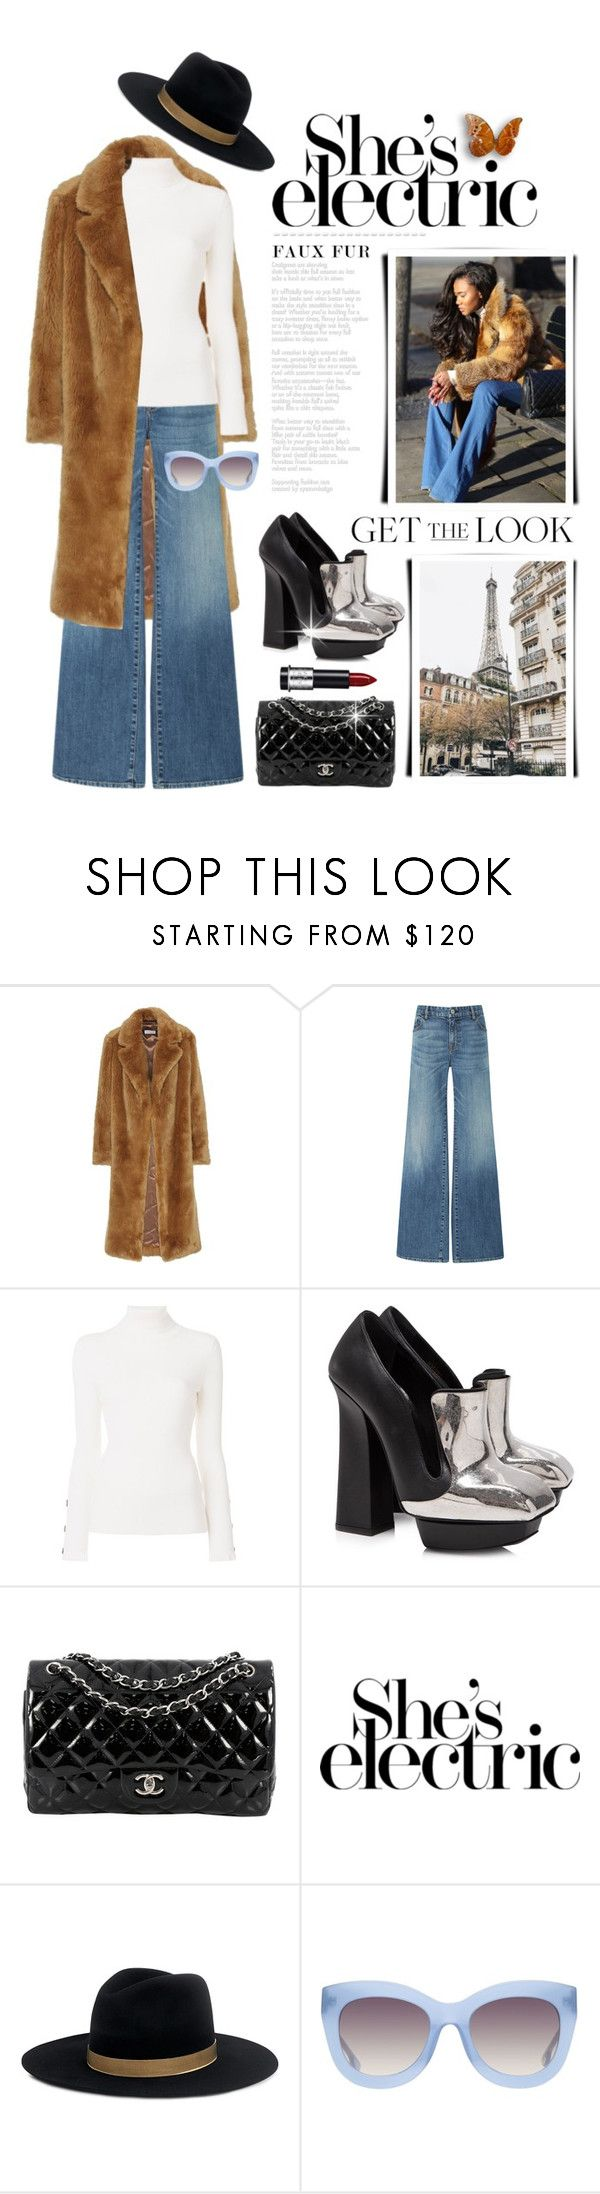 """""""Wow Factor: Faux Fur"""" by shortyluv718 ❤ liked on Polyvore featuring Dries Van Noten, Nili Lotan, See by Chloé, Alexander McQueen, Chanel, Ultimate, IRO, Alice + Olivia and fauxfur"""